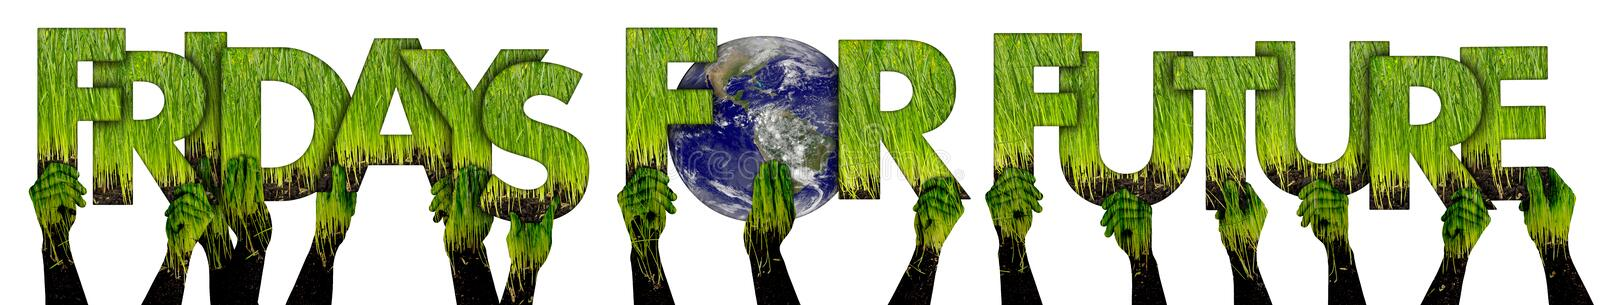 Activist people holding up green grass letter lettering forming  words fridays for future and earth globe isolated white royalty free stock photo